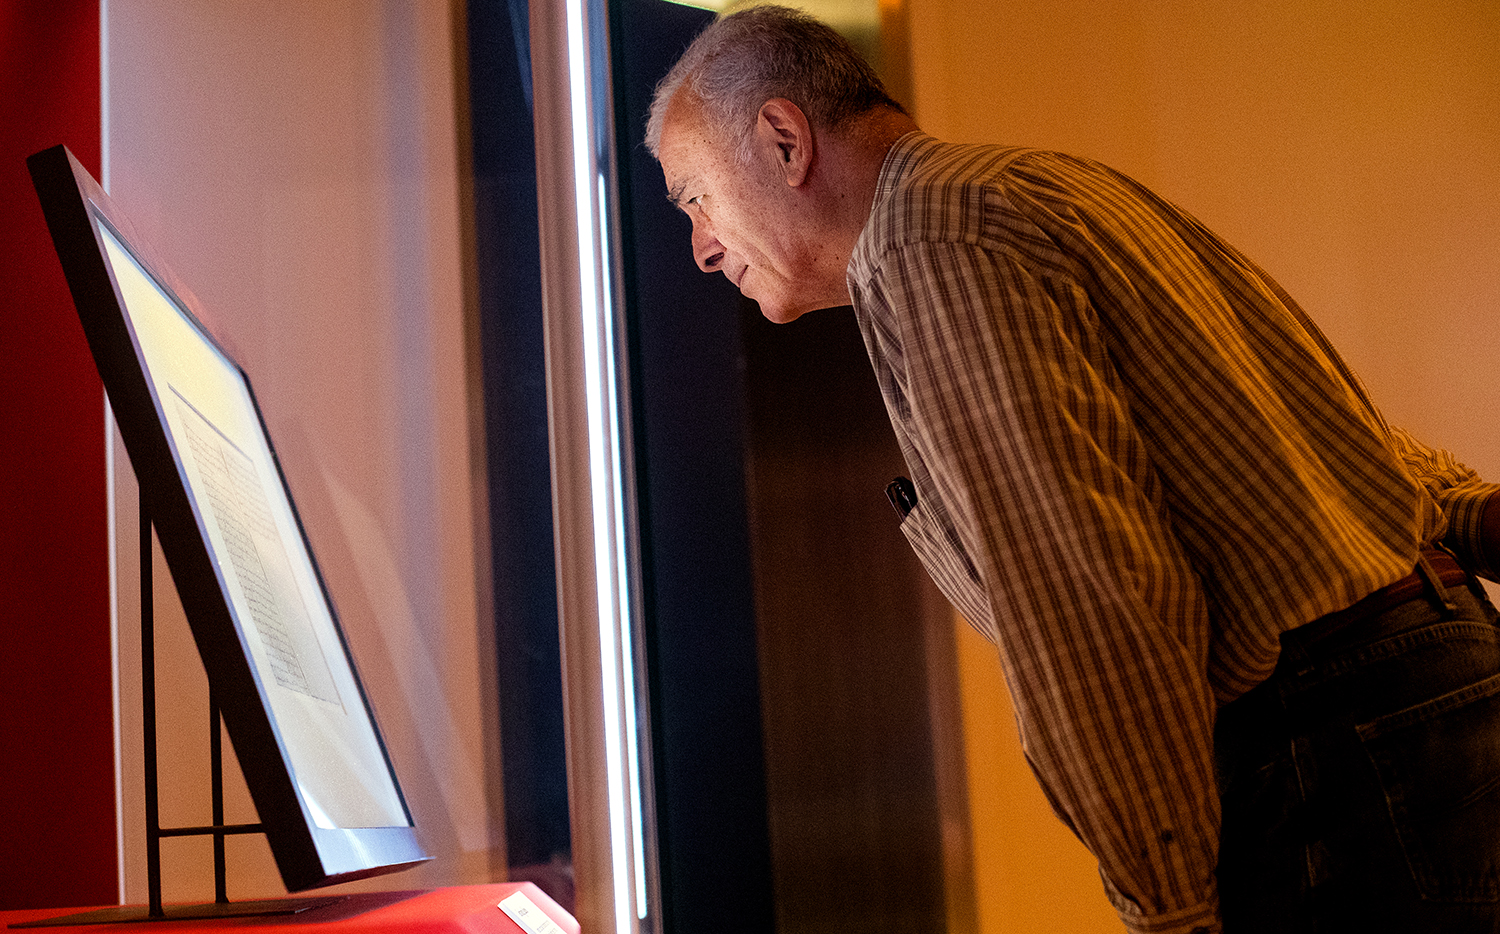 Frank Cordoba of San Diego, CA, gazes at a handwritten copy of the Gettysburg Address on display at the Abraham Lincoln Presidential Museum Friday, Nov. 16, 2018. The document is one of many copies Lincoln gave out after the speech in November 1863. One was given to a group that sold it to raise money for the benefit of wounded soldiers. Four score years later, it was for sale again and Illinois schoolchildren donated pennies and nickels so the state could buy the document. That copy is the one now housed at the presidential library and will be on display through Nov 25. [Ted Schurter/The State Journal-Register]